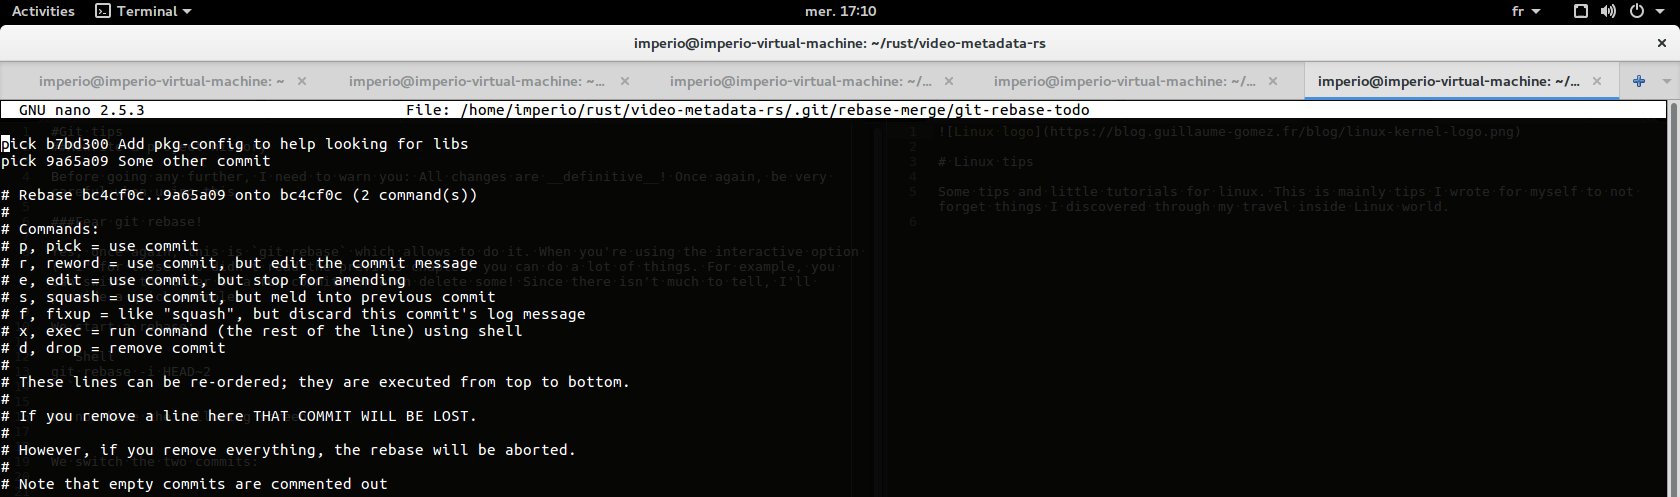 Git rebase screen